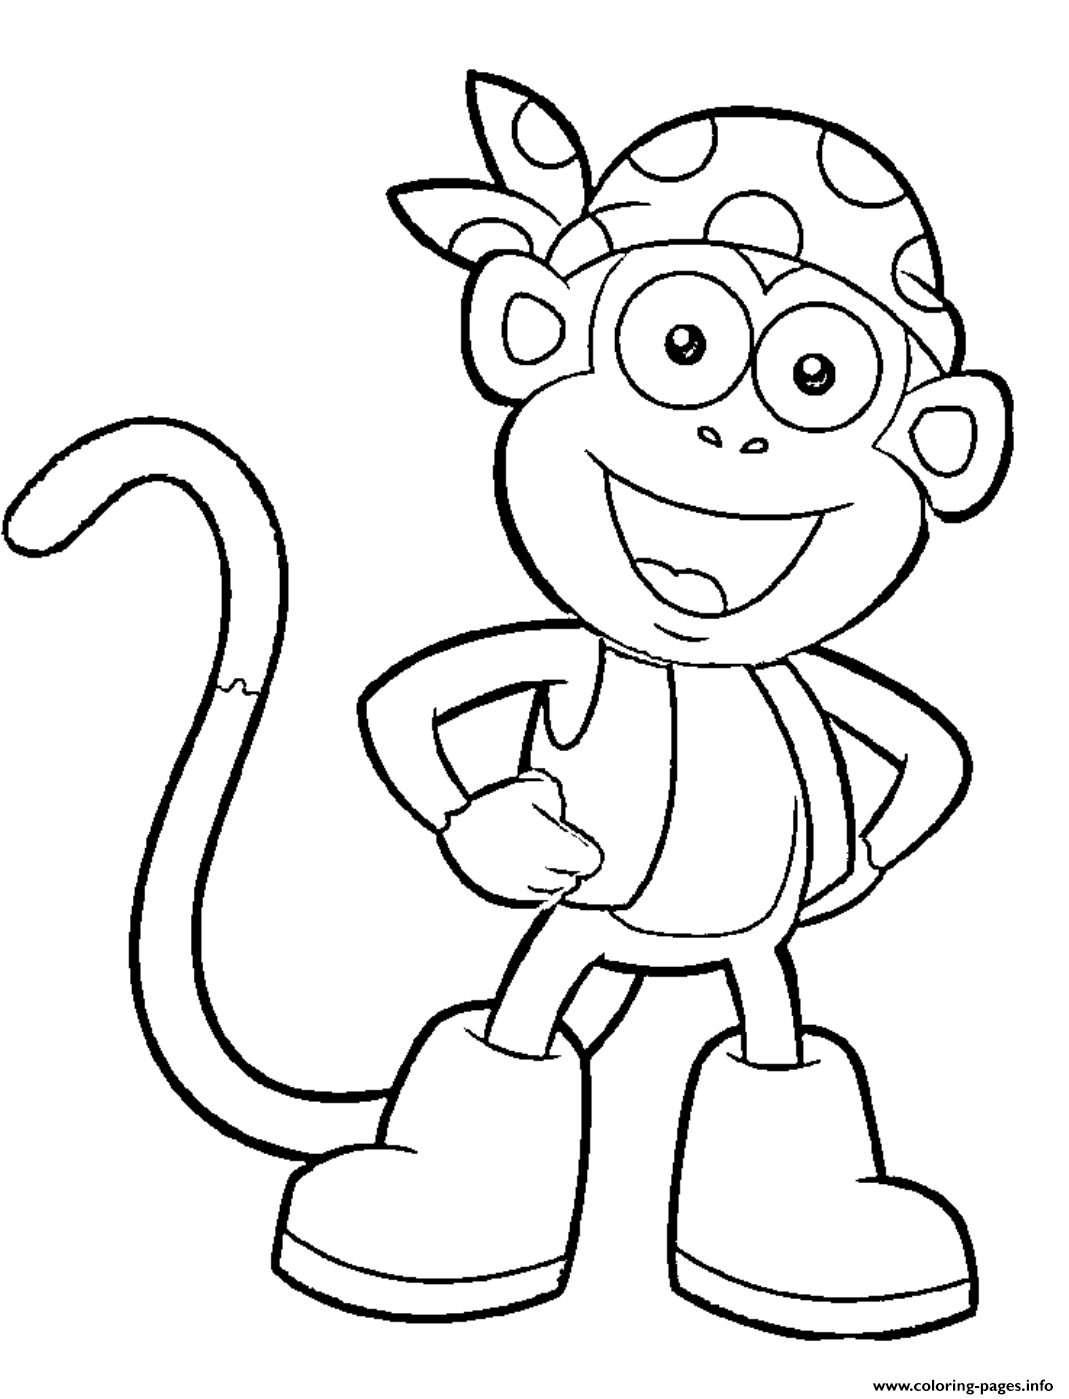 Painting pages dora - Print Dora Printable S Boots Character451a Coloring Pages